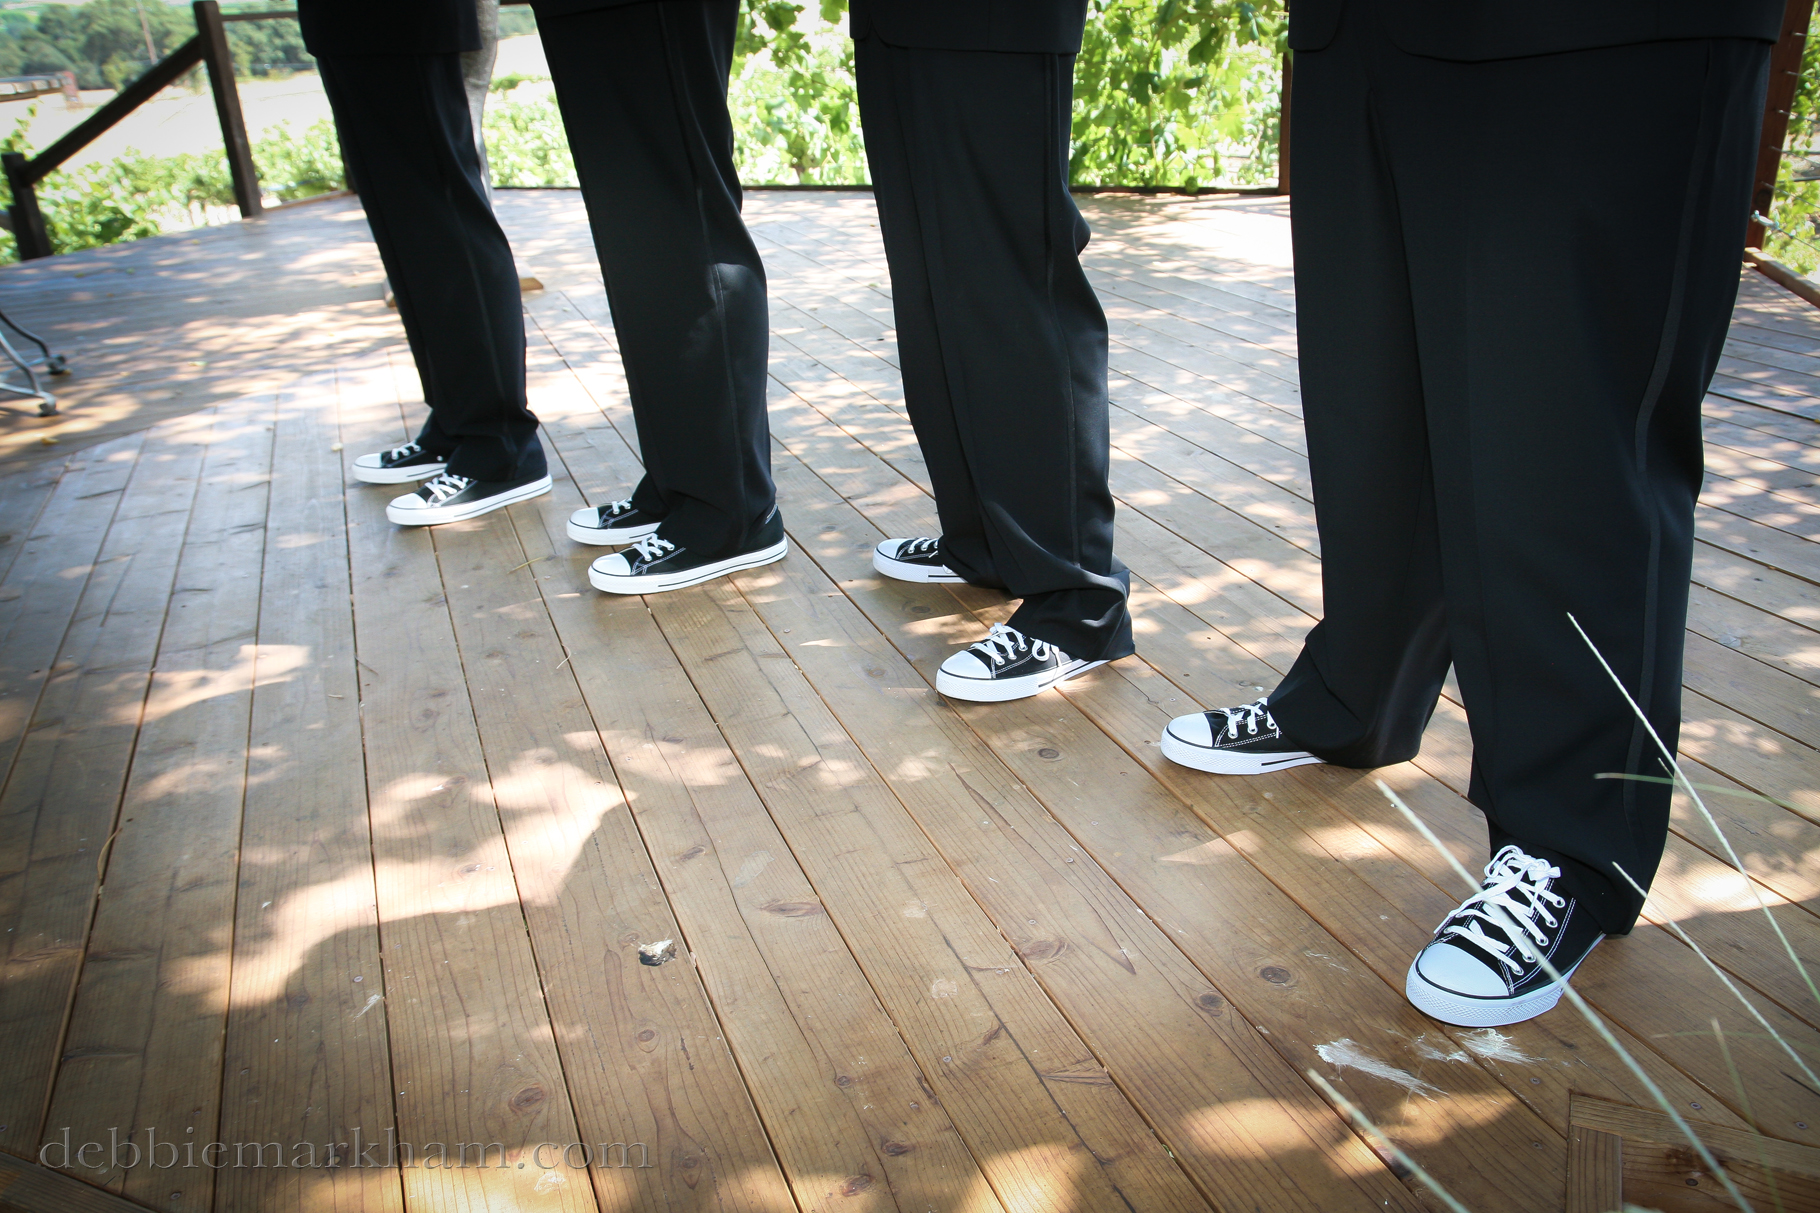 Cambria Photographer Debbie Markham-Professional Wedding Photos at Castoro Winery - Vineyards Outdoor Grooms Black Converse Shoes